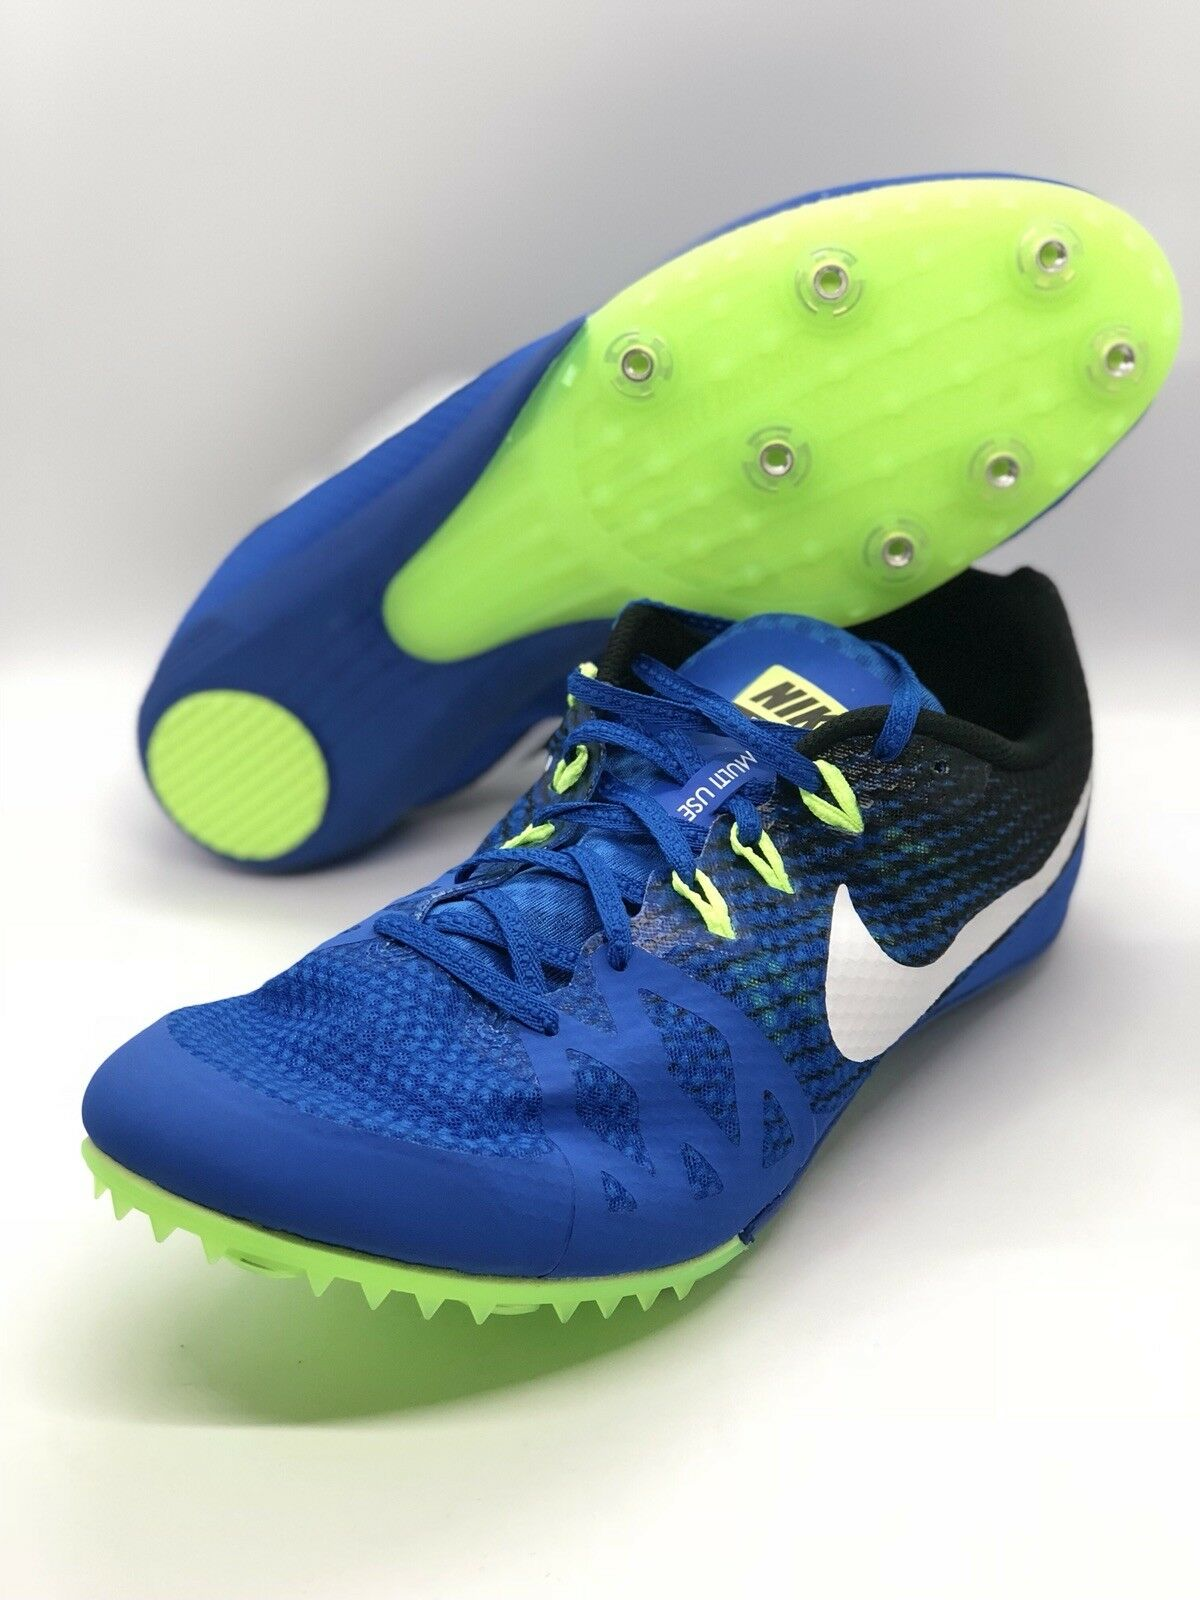 New Nike Zoom Rival M 8 Track Spikes Unisex 806555-413 Men's Size US 12.5